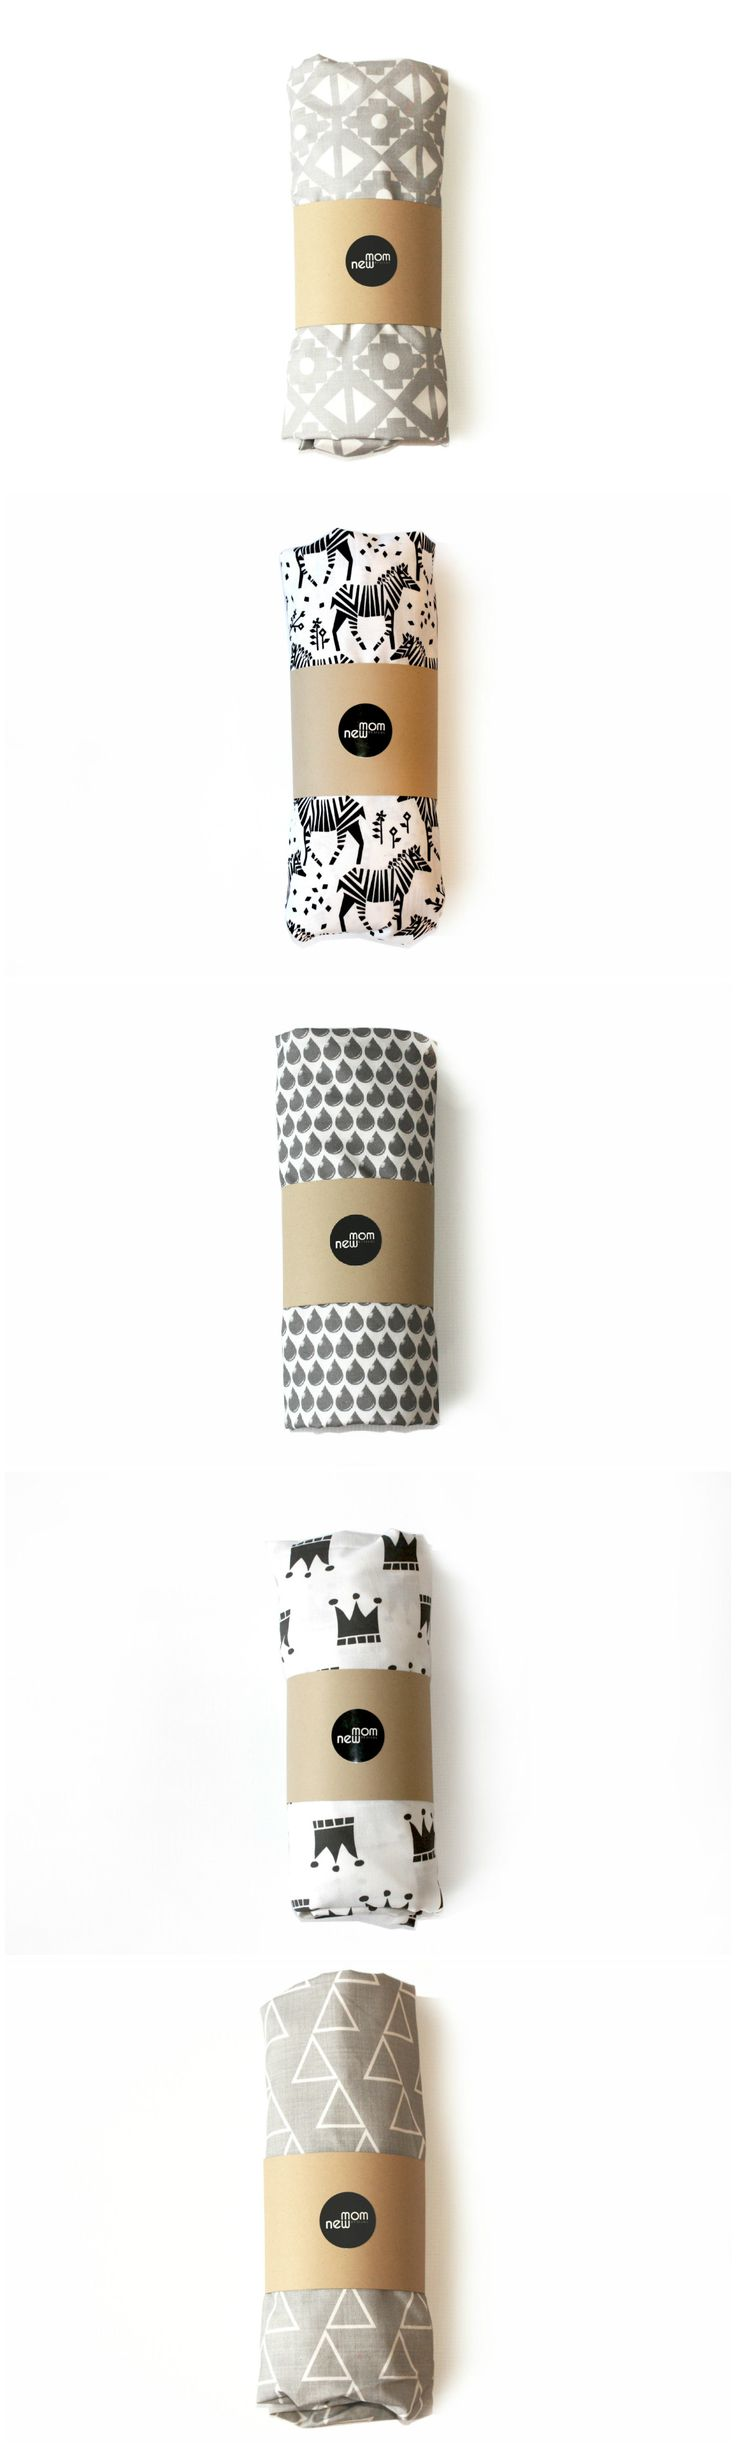 Stylish monochrome crib sheets for a trendy nursery/ toddler room